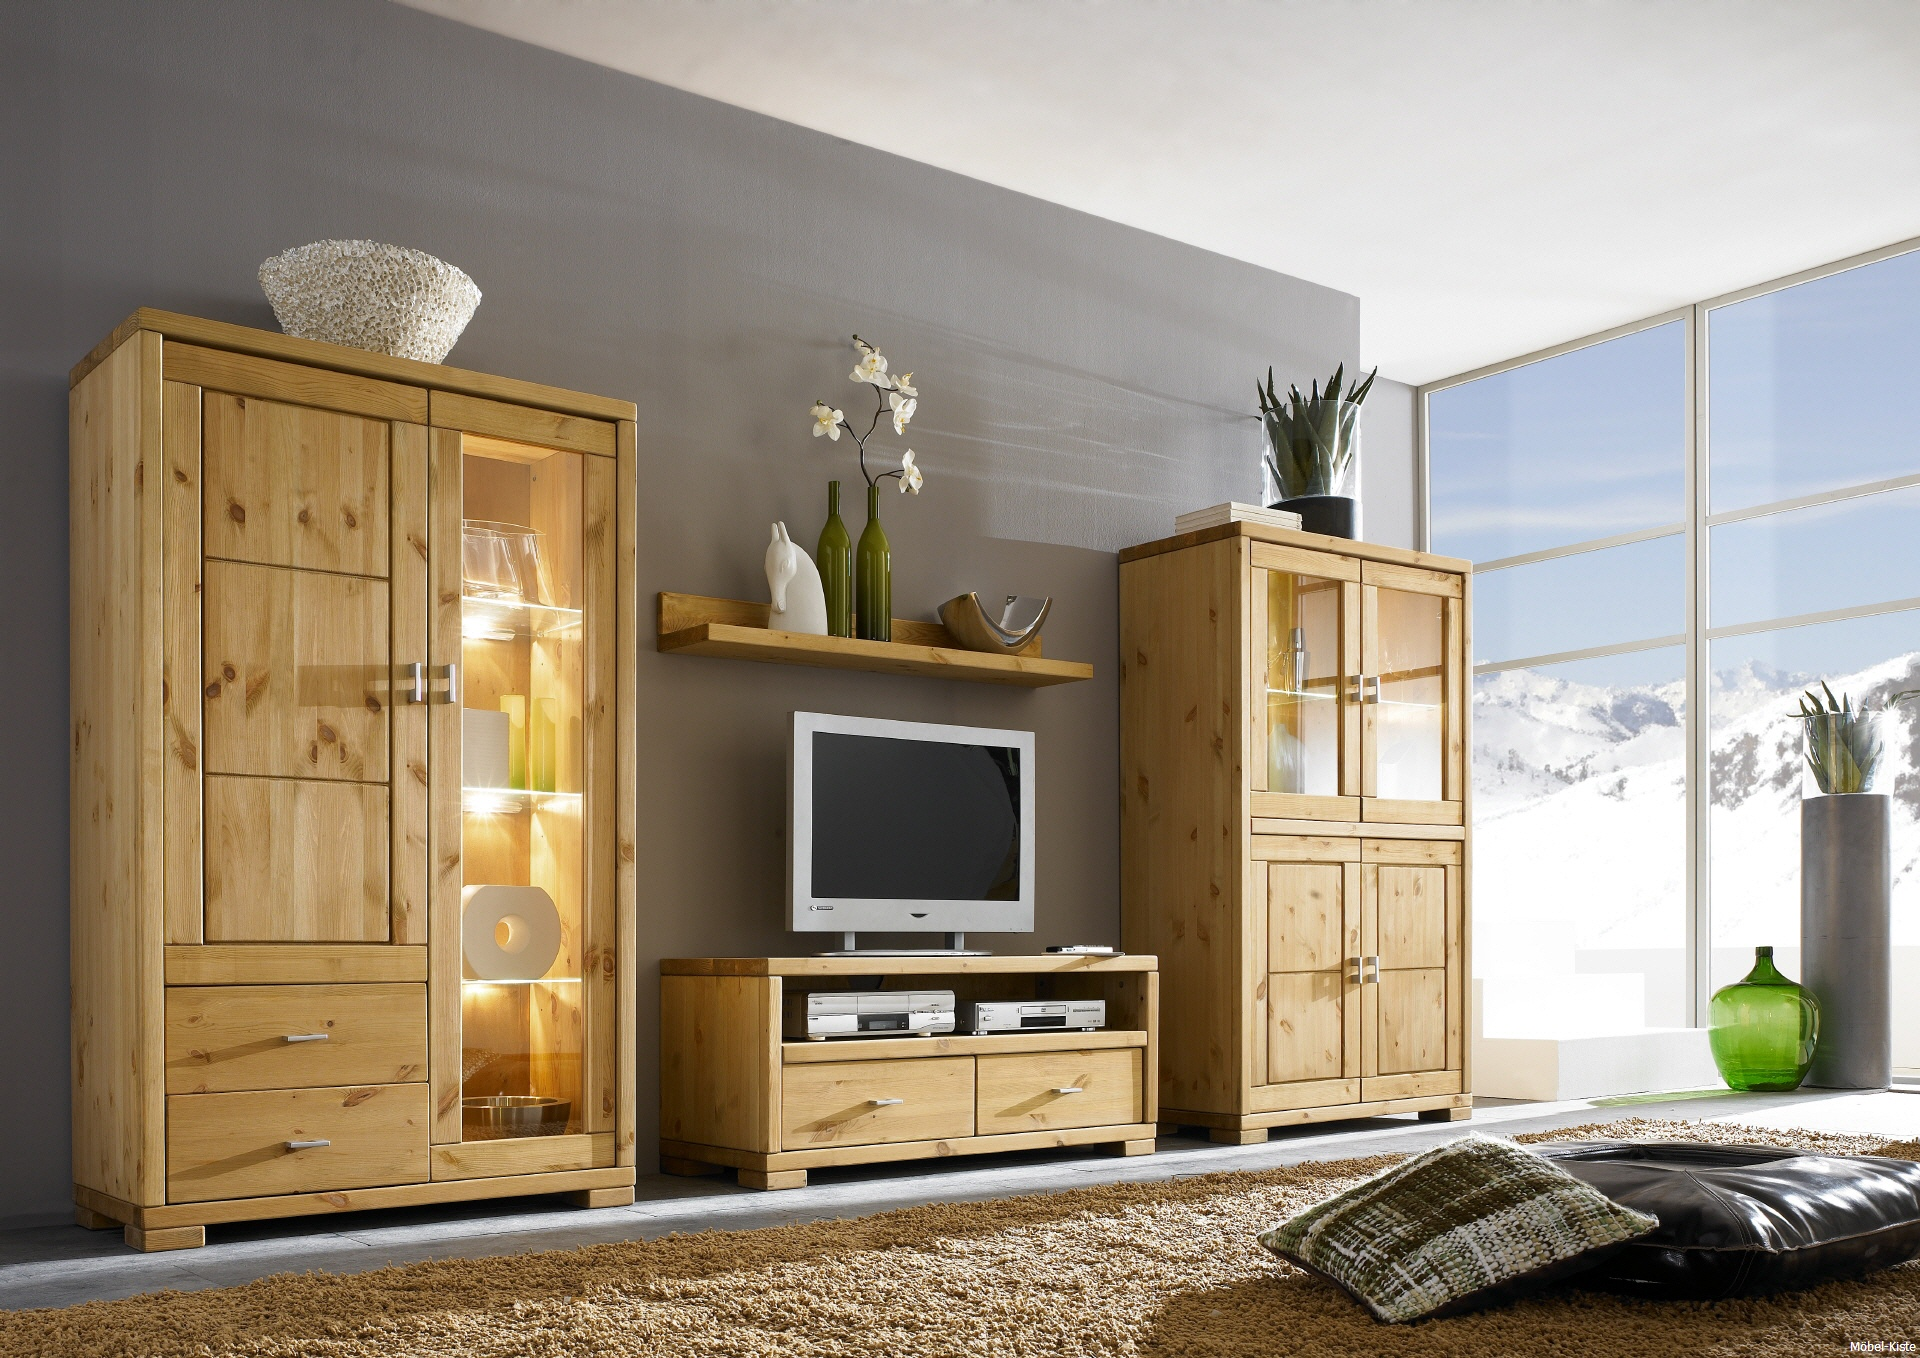 wohnzimmer schrankwand landhausstil m belideen. Black Bedroom Furniture Sets. Home Design Ideas